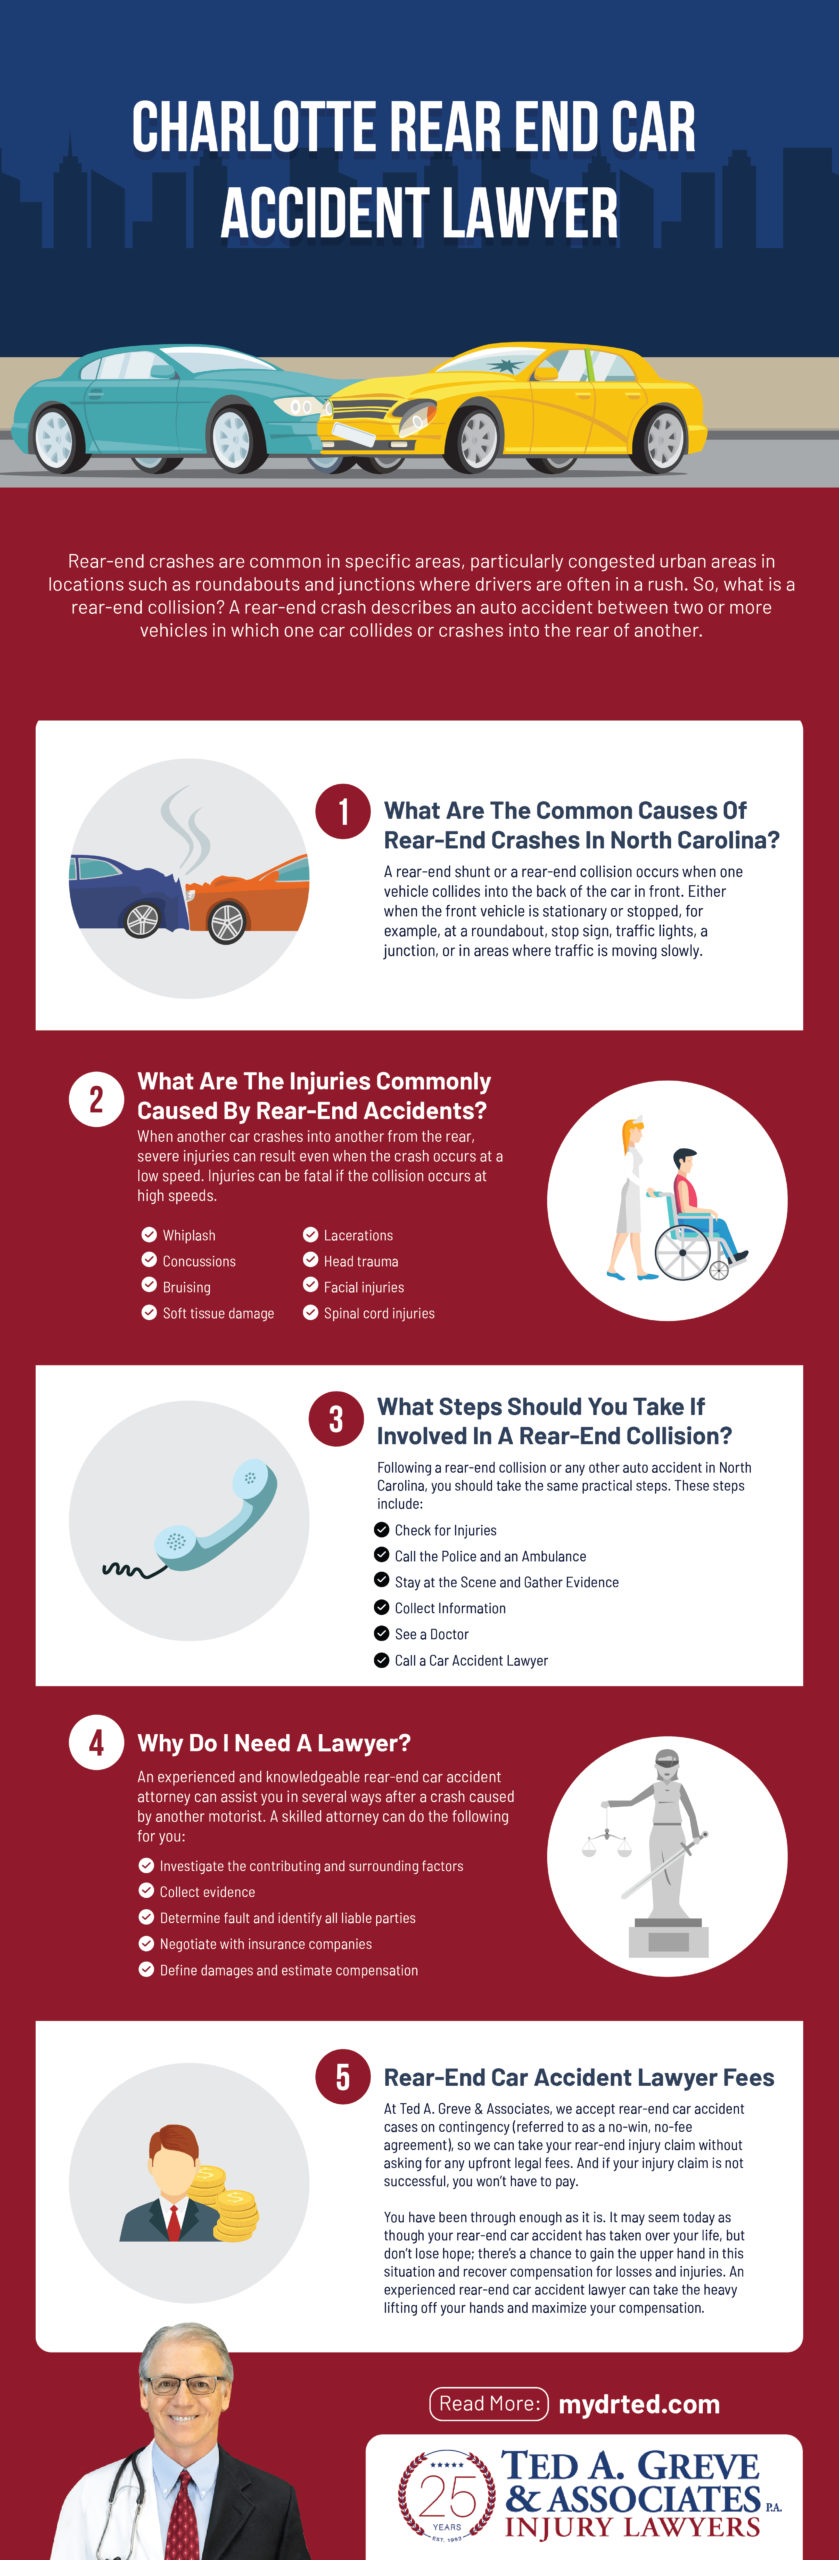 Ted Greve Charlotte Rear End Car Accident Infographic